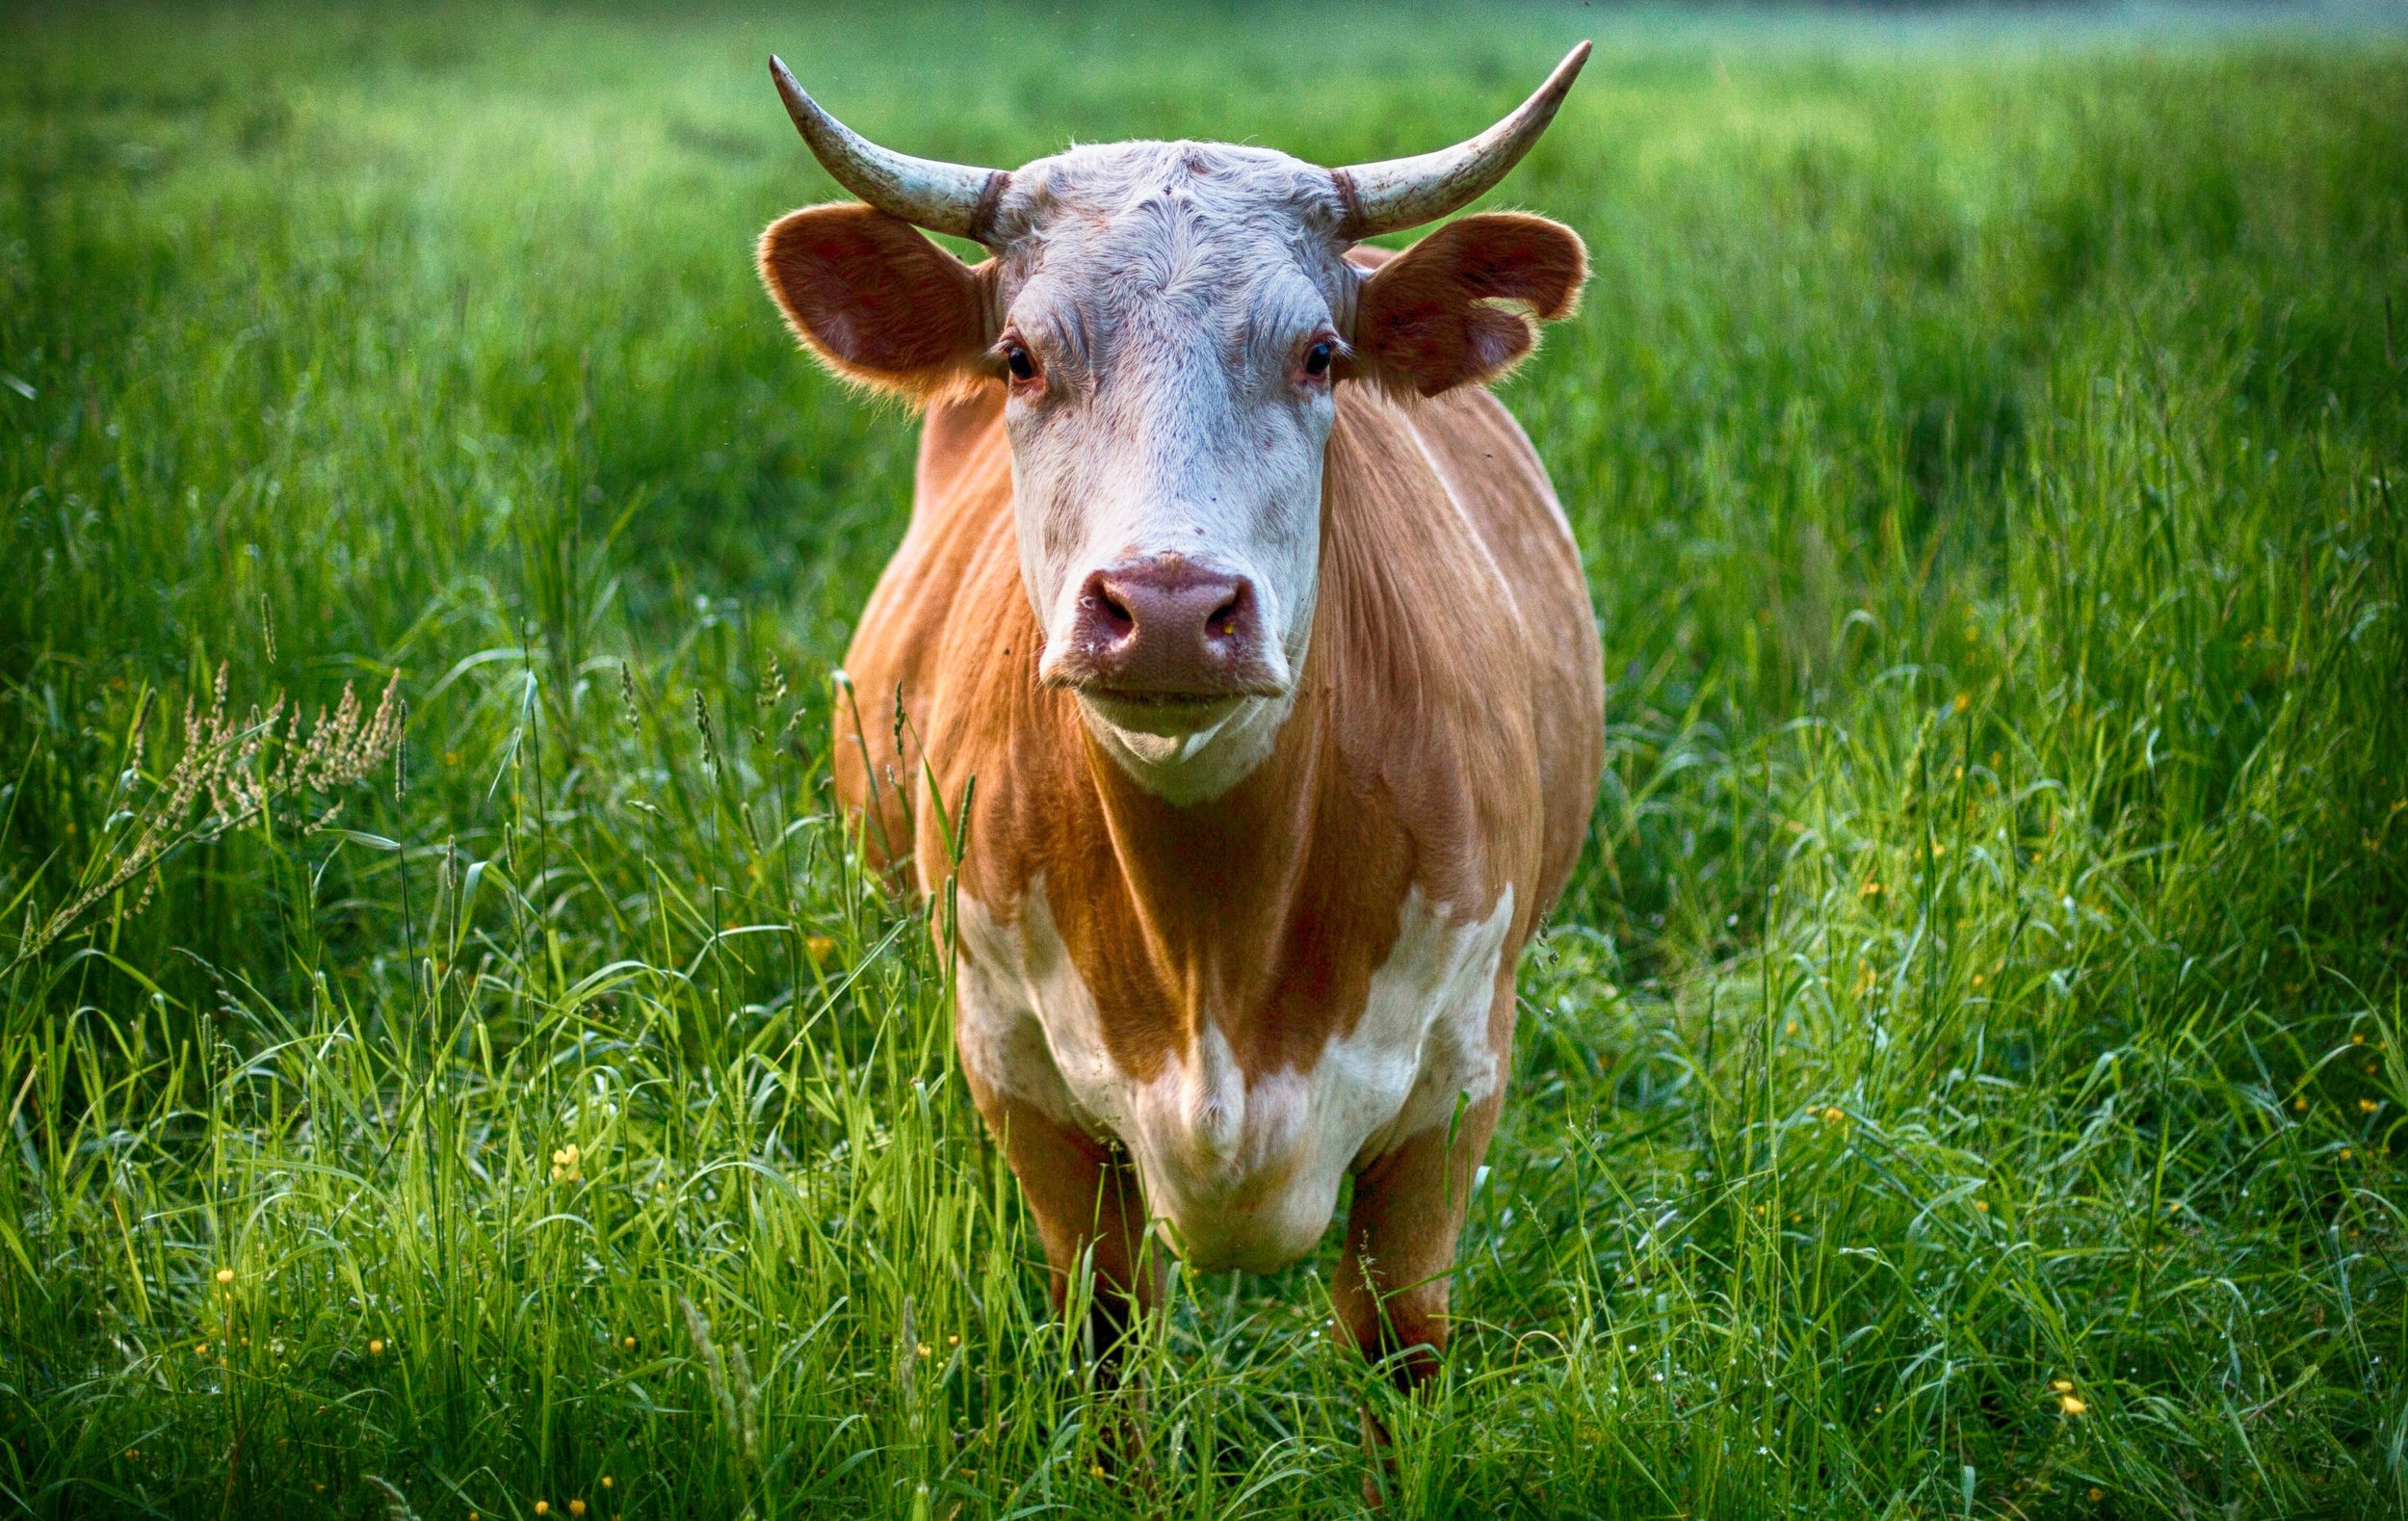 agriculture-animal-cattle-458991.jpg